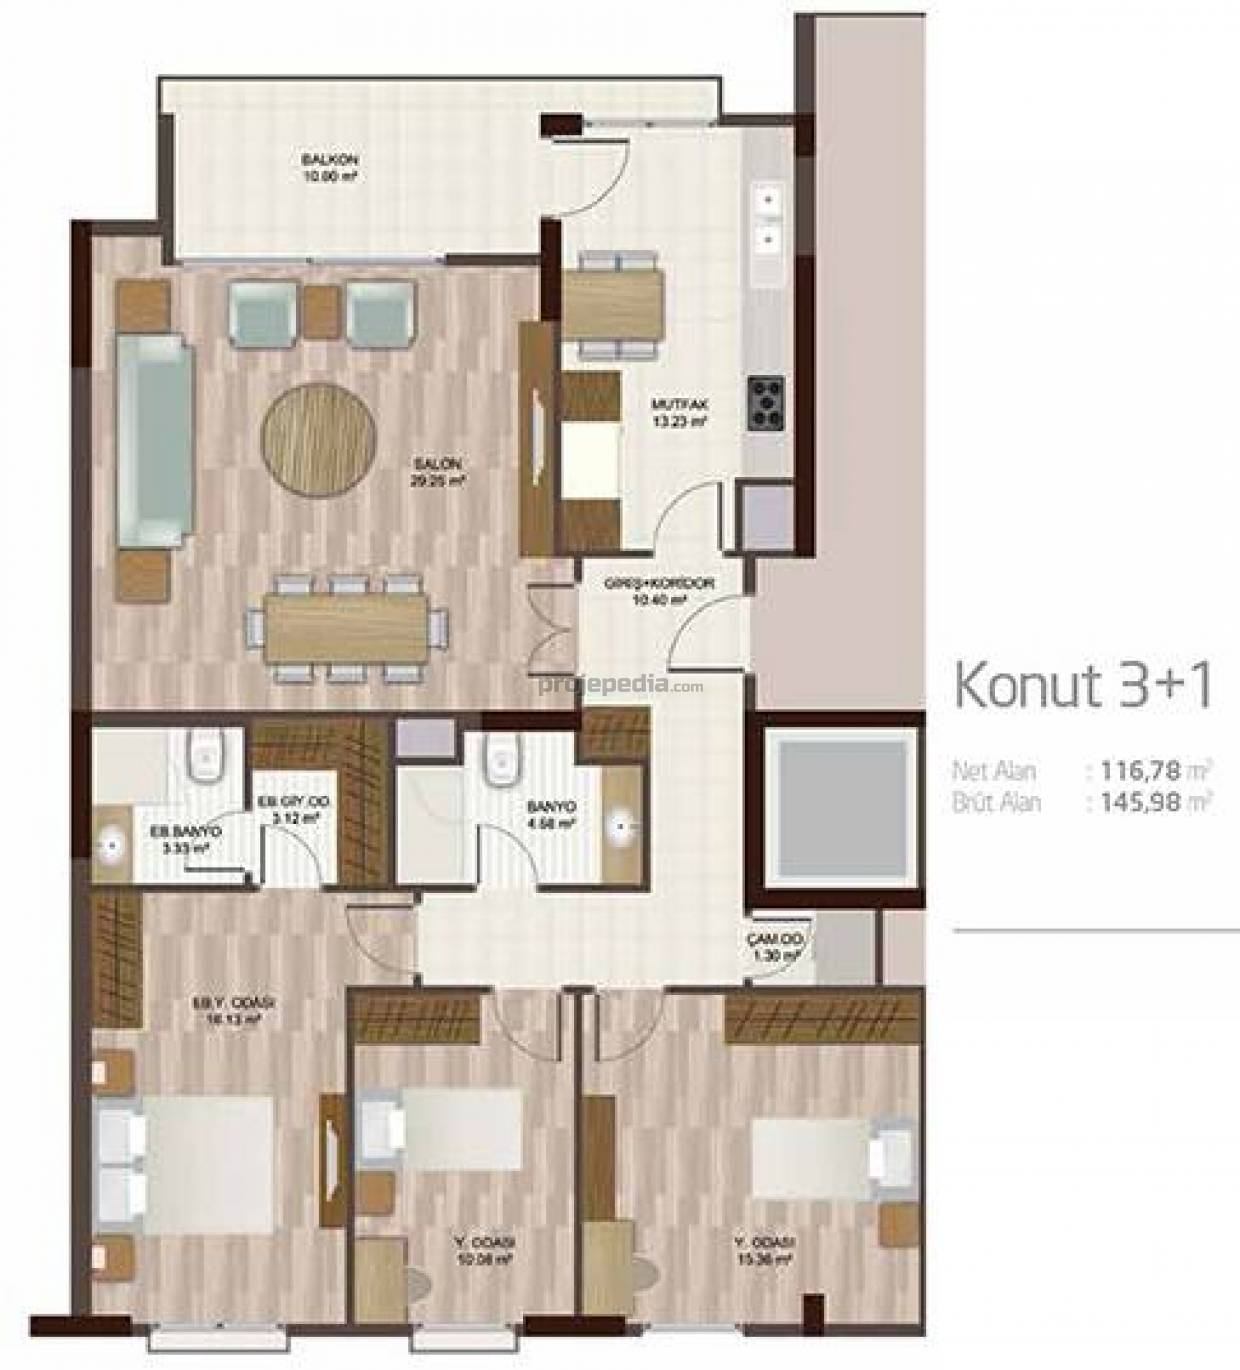 Apartment plan 3+1 D